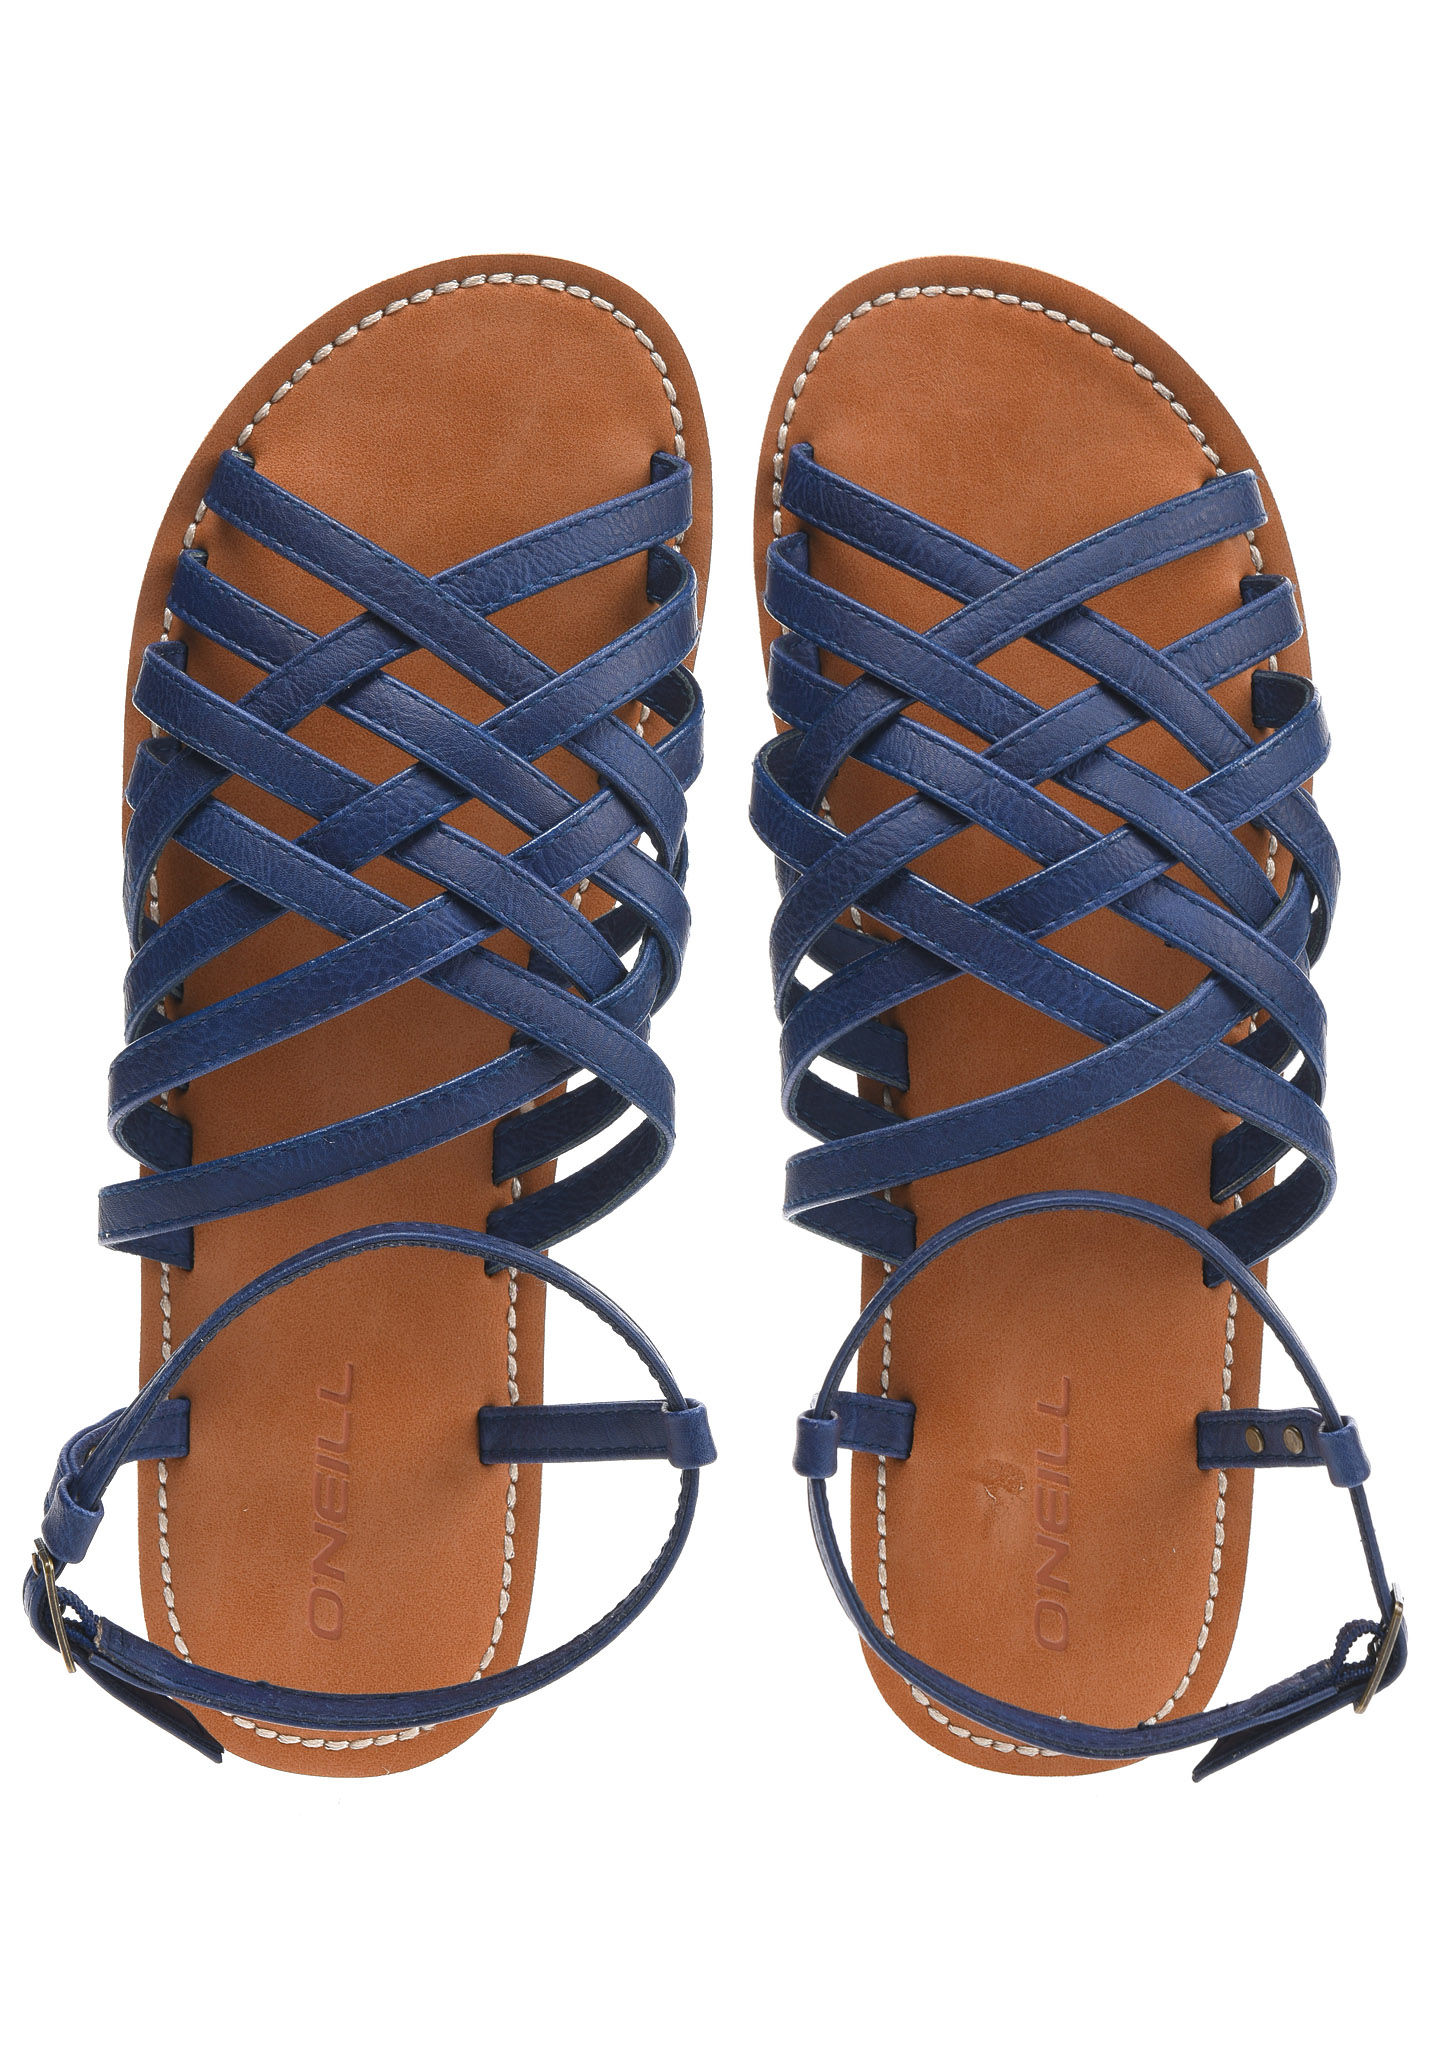 5fa3cb57500685 O Neill Braided - Sandalen für Damen - Blau - Planet Sports